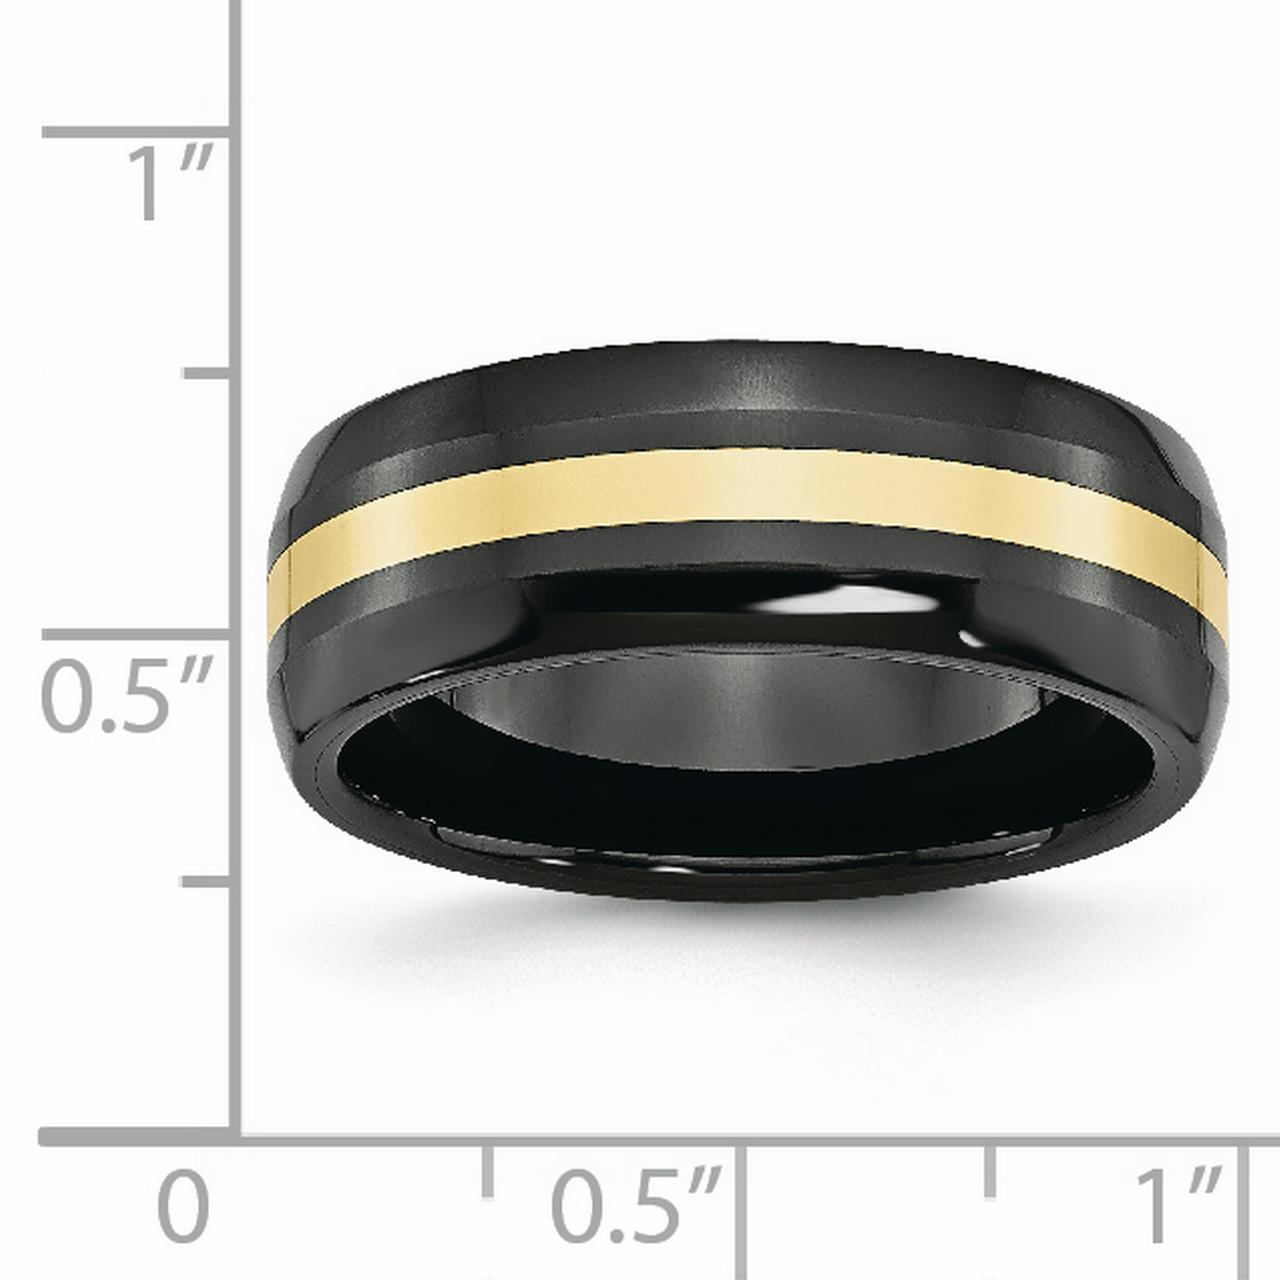 Ceramic Black with 14k Inlay 8mm Polished Band Ring 8.5 Size - image 2 de 6